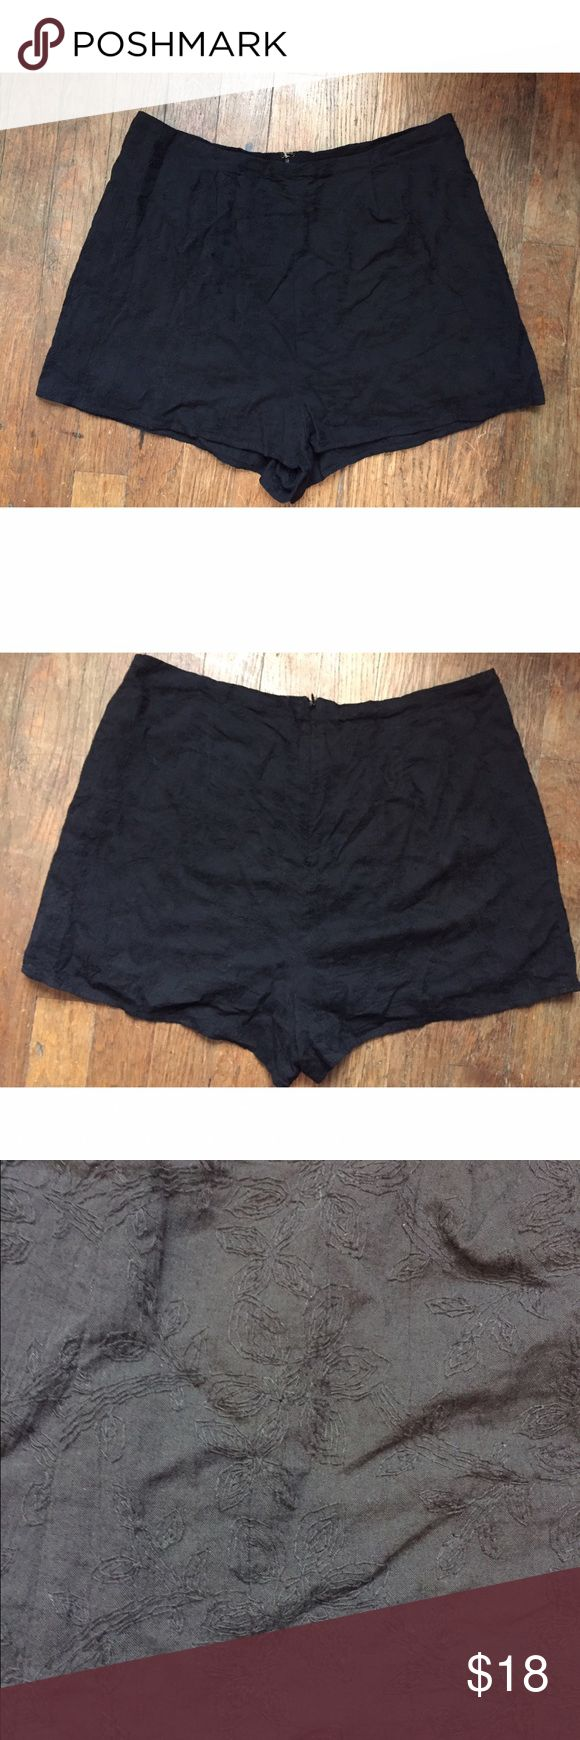 Urban Outfitters high waisted black shorts These are size 8, black, high waisted, Urban Outifitters cotton shorts! They have cool embroidered flowers everywhere on them. They are super comfy and looks great dressed down with a grey tee or dressed up with heels! Urban Outfitters Shorts Bermudas